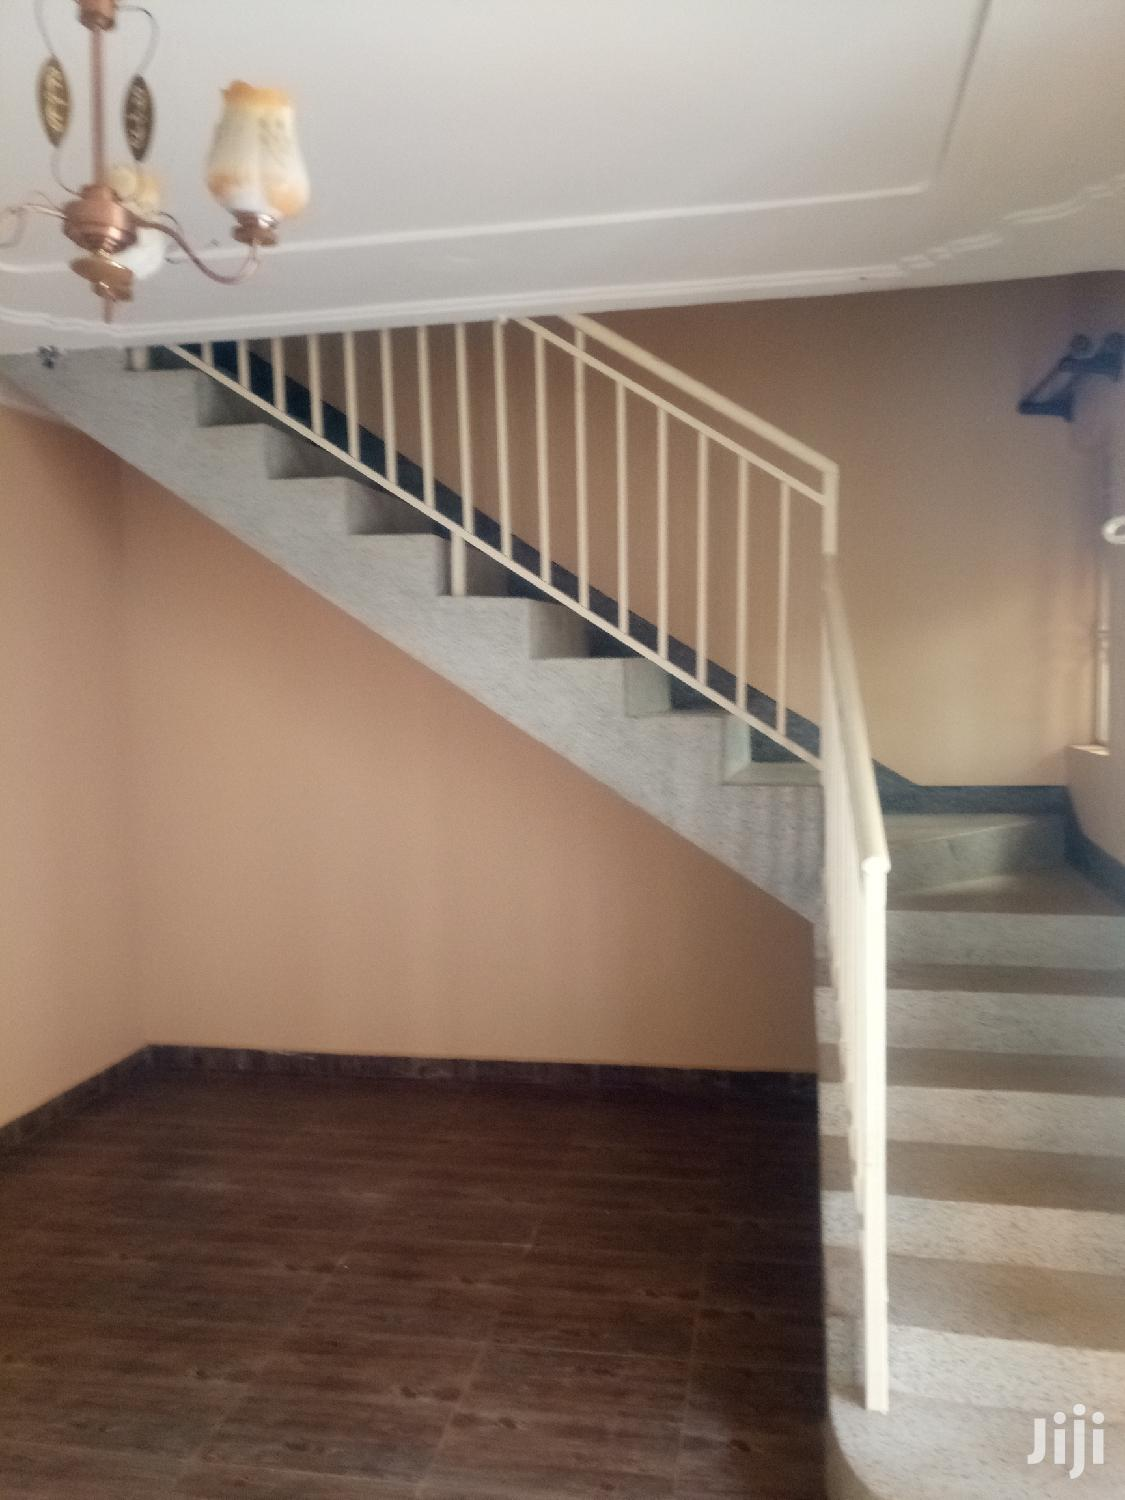 Kyambogo Two Bedrooms Duplex House for Rent   Houses & Apartments For Rent for sale in Kampala, Central Region, Uganda